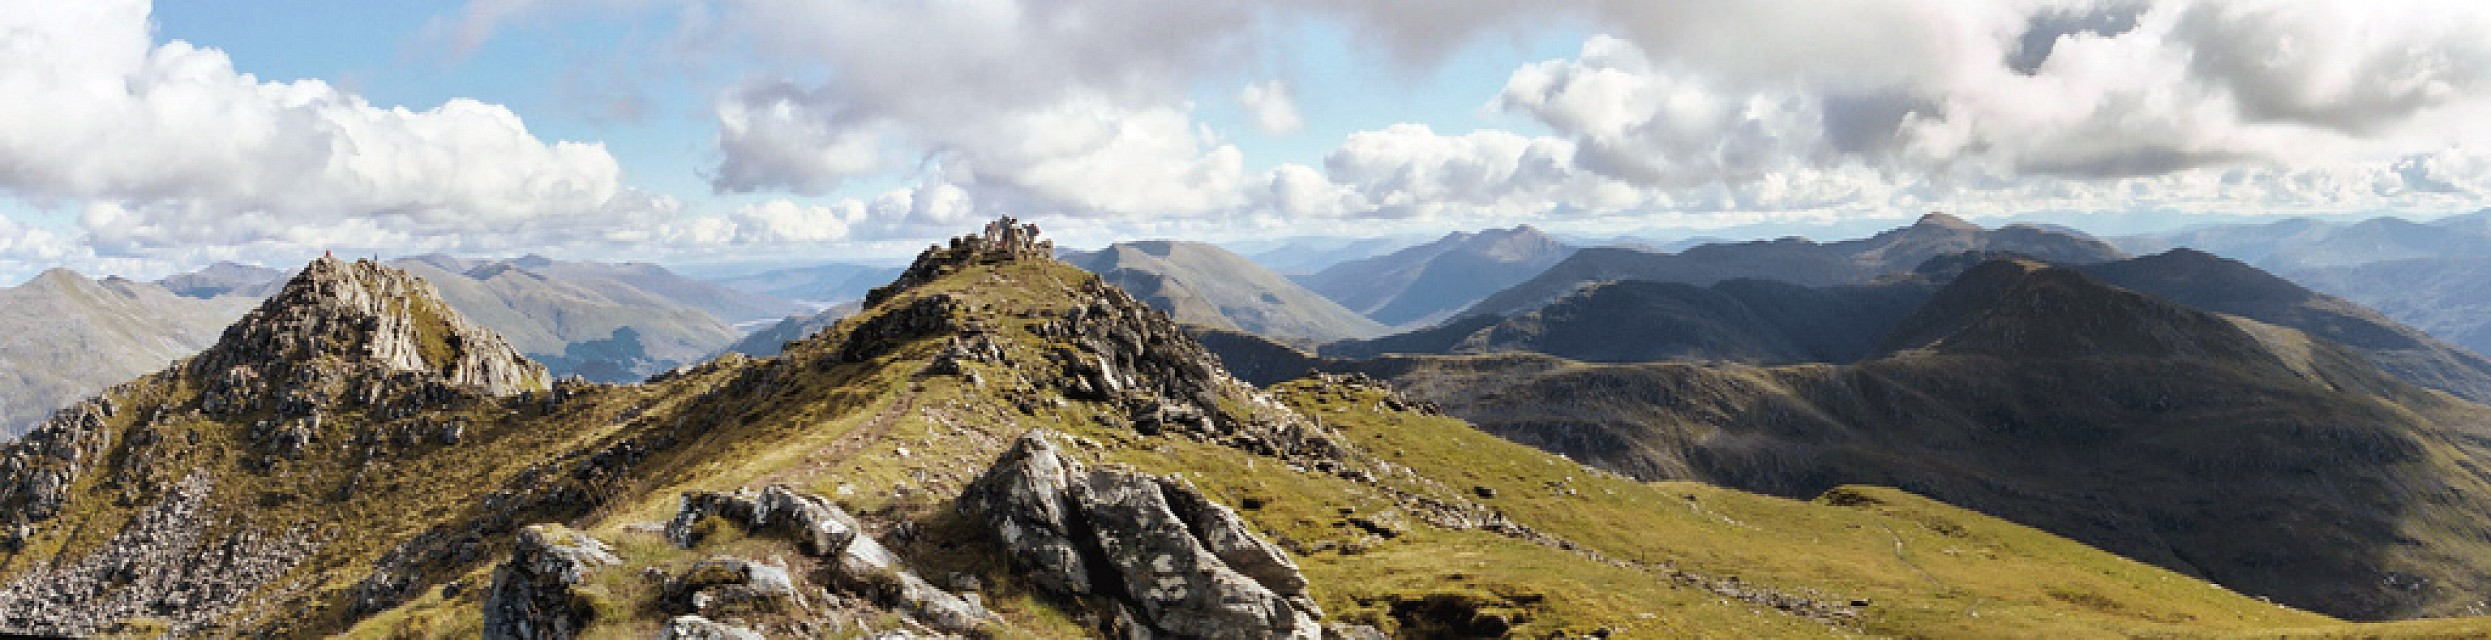 The Summit of the Saddle - Kintail